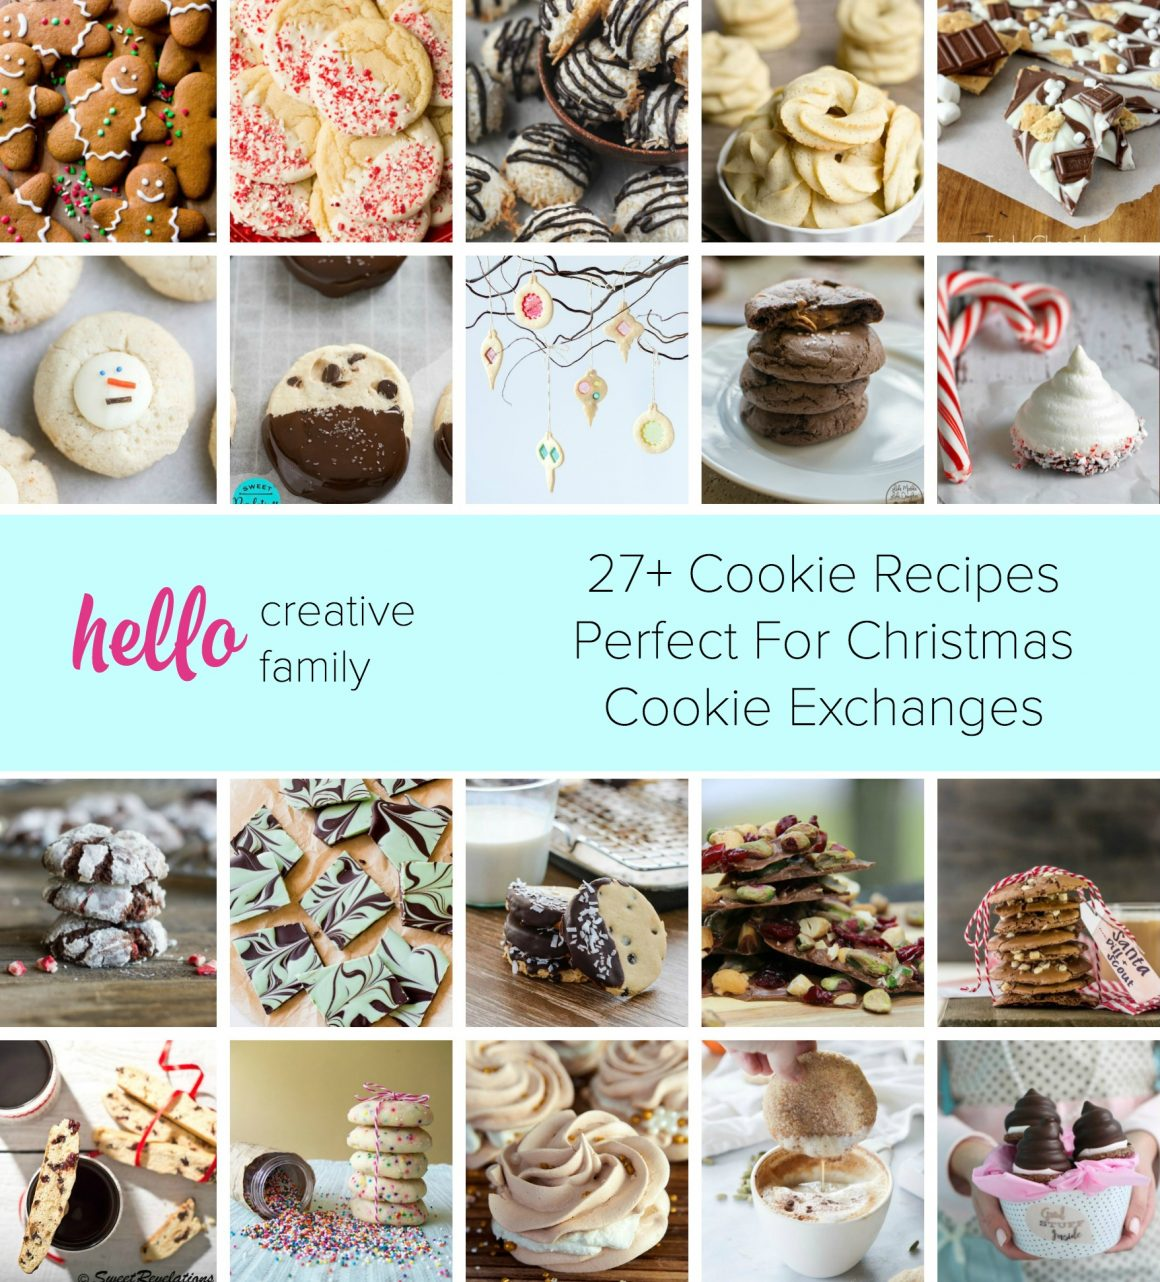 Looking for cookies, barks or biscotti recipes for your next Christmas cookie exchange? Here are 27 delicious cookie recipes that are perfect for cookie exchanges or handmade gifts.